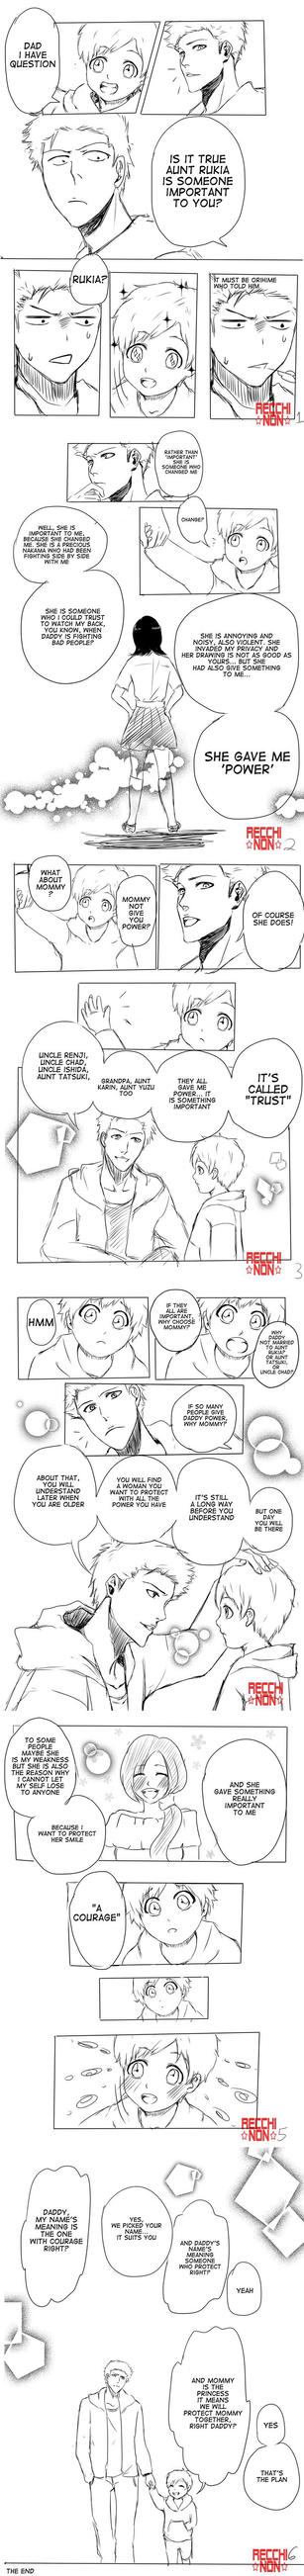 Bleach mini doujin 1 by recchinon